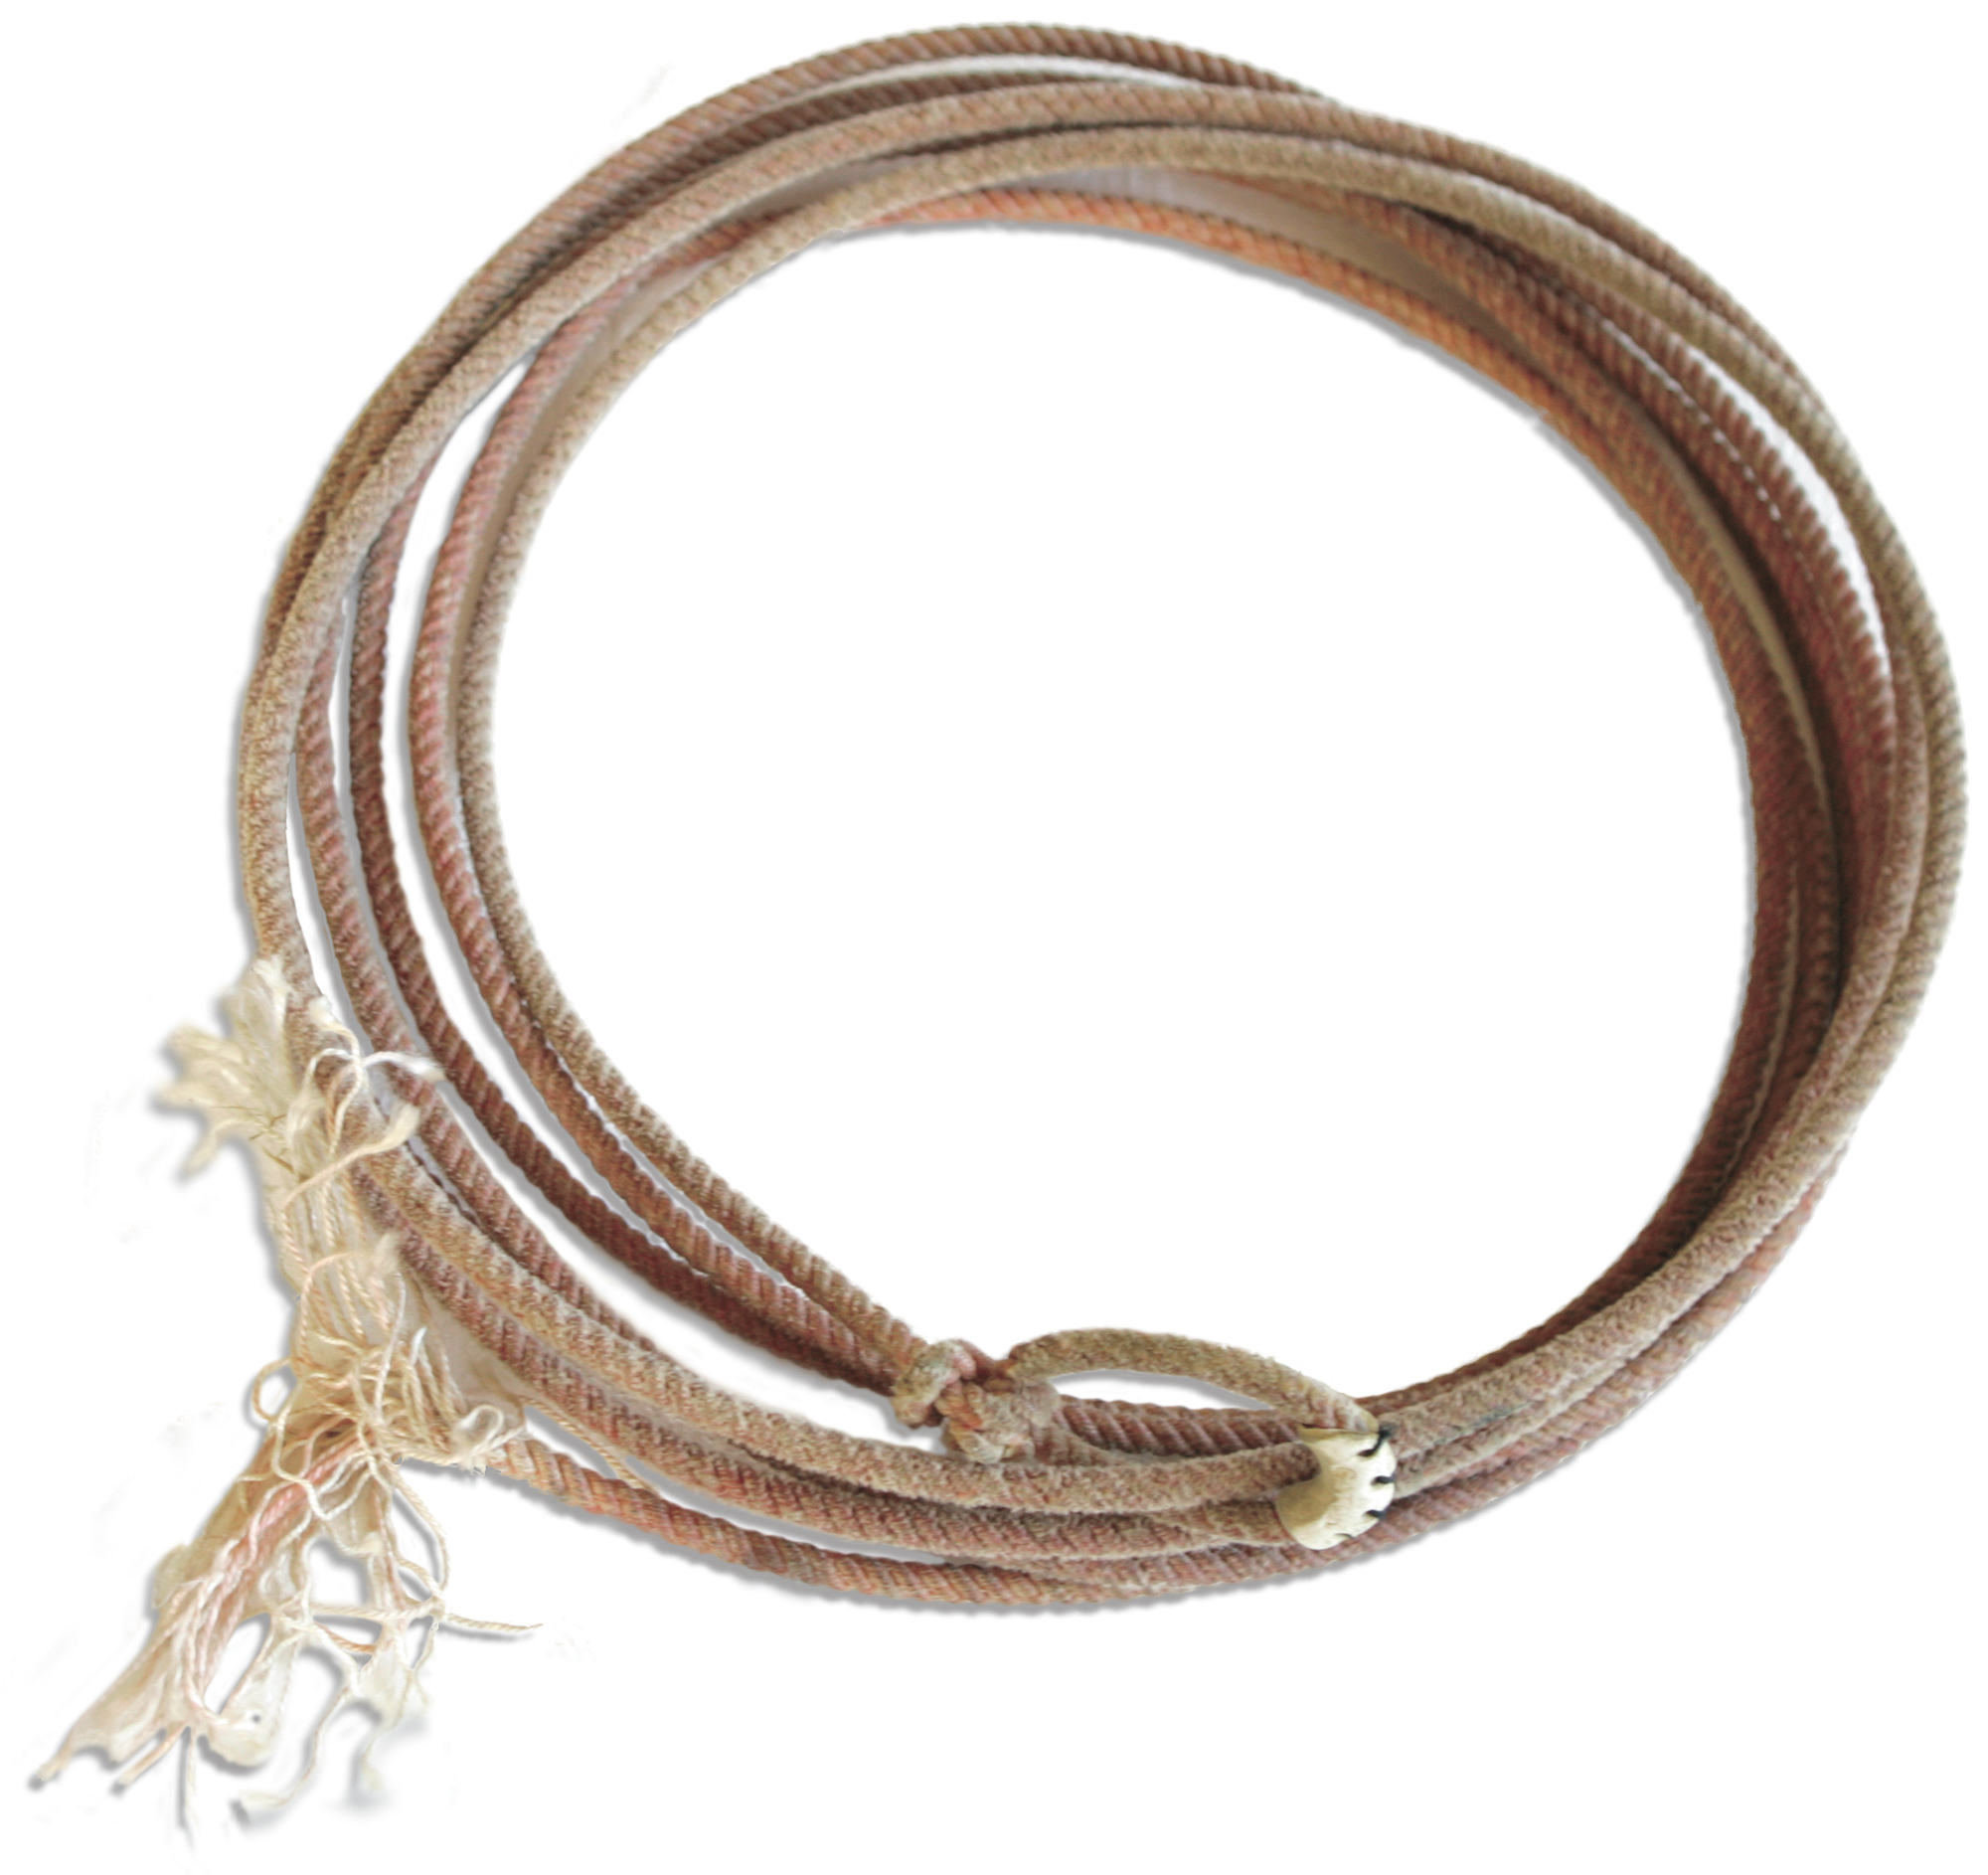 PNG Lasso - 43642